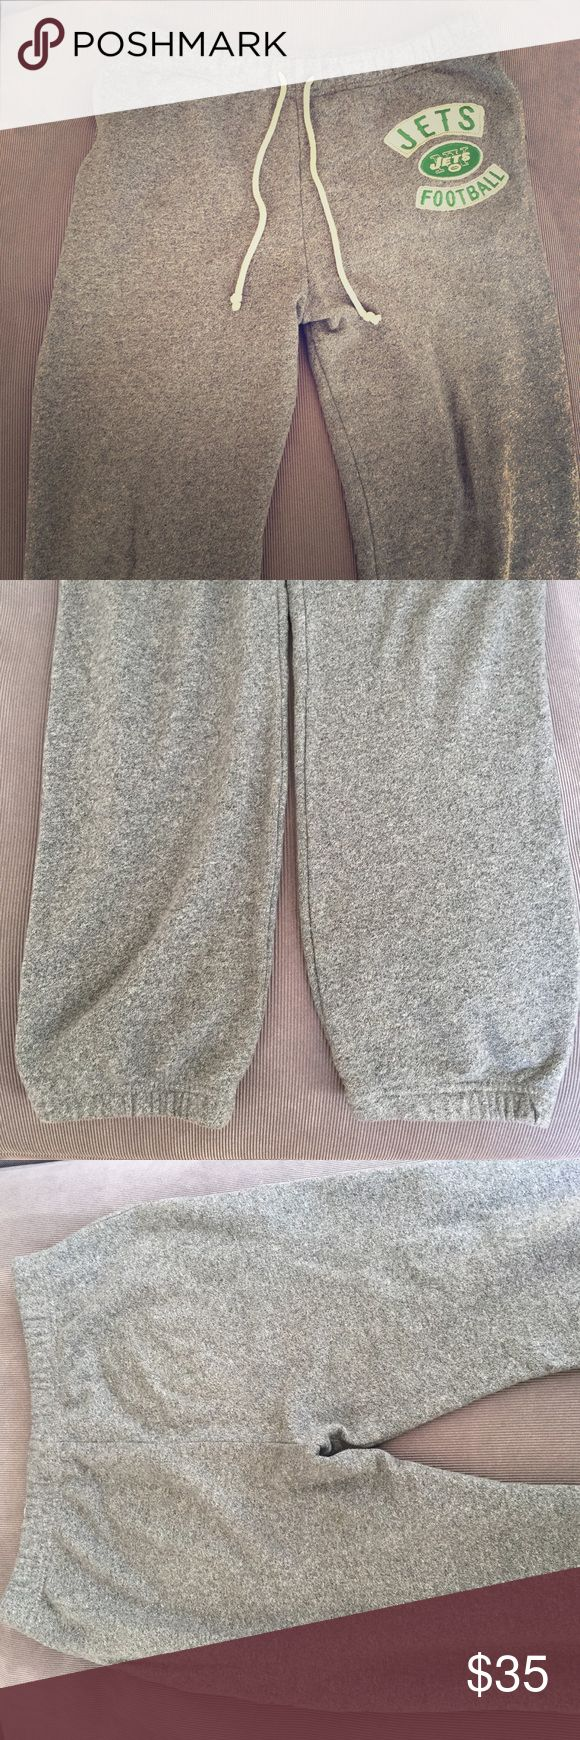 Junk Food Jets Sweatpants Really comfortable sweatpants made of French terry fabric. Basically in the same condition as I bought them from Bloomingdales. Junk Food Pants Sweatpants & Joggers